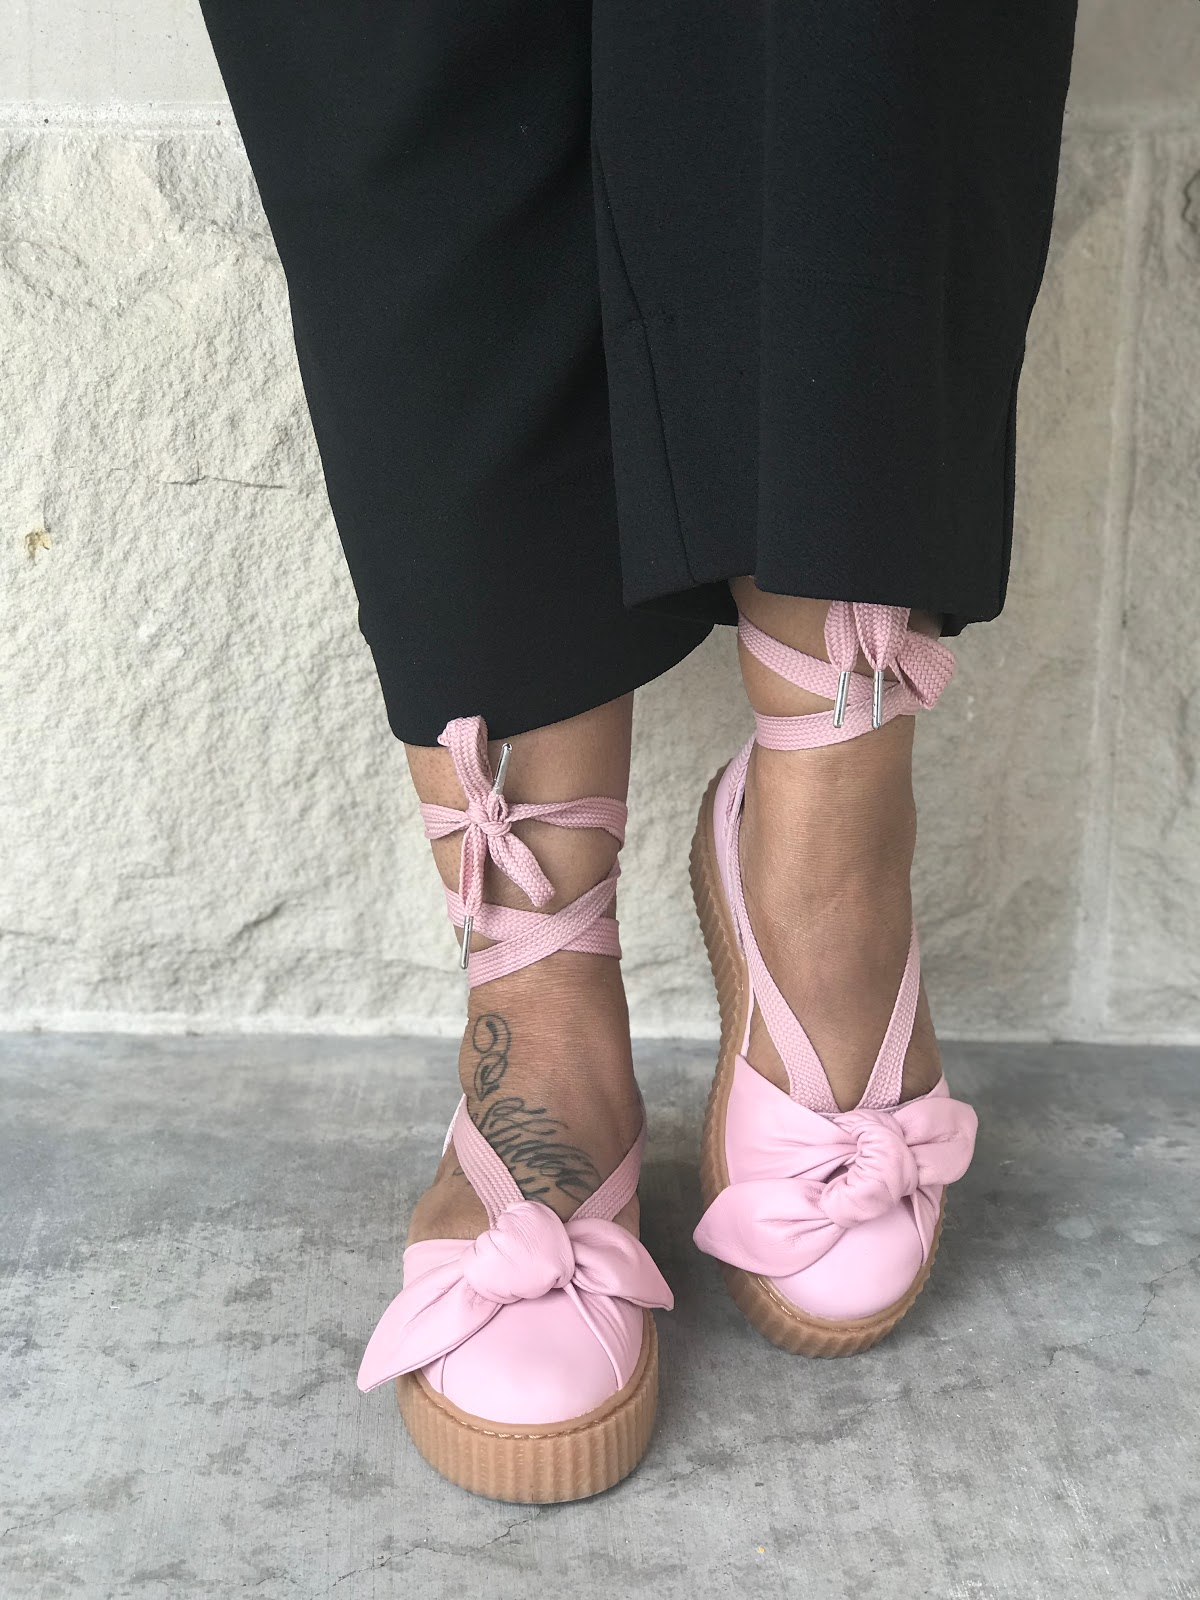 Image: Pink Puma Rihanna Creeper Shoes:Hey, guys here are a few things that have been dressing me up this summer. And, yes two items are out of my usual wear. But, hey who cares at my age I am playing up and down my style.